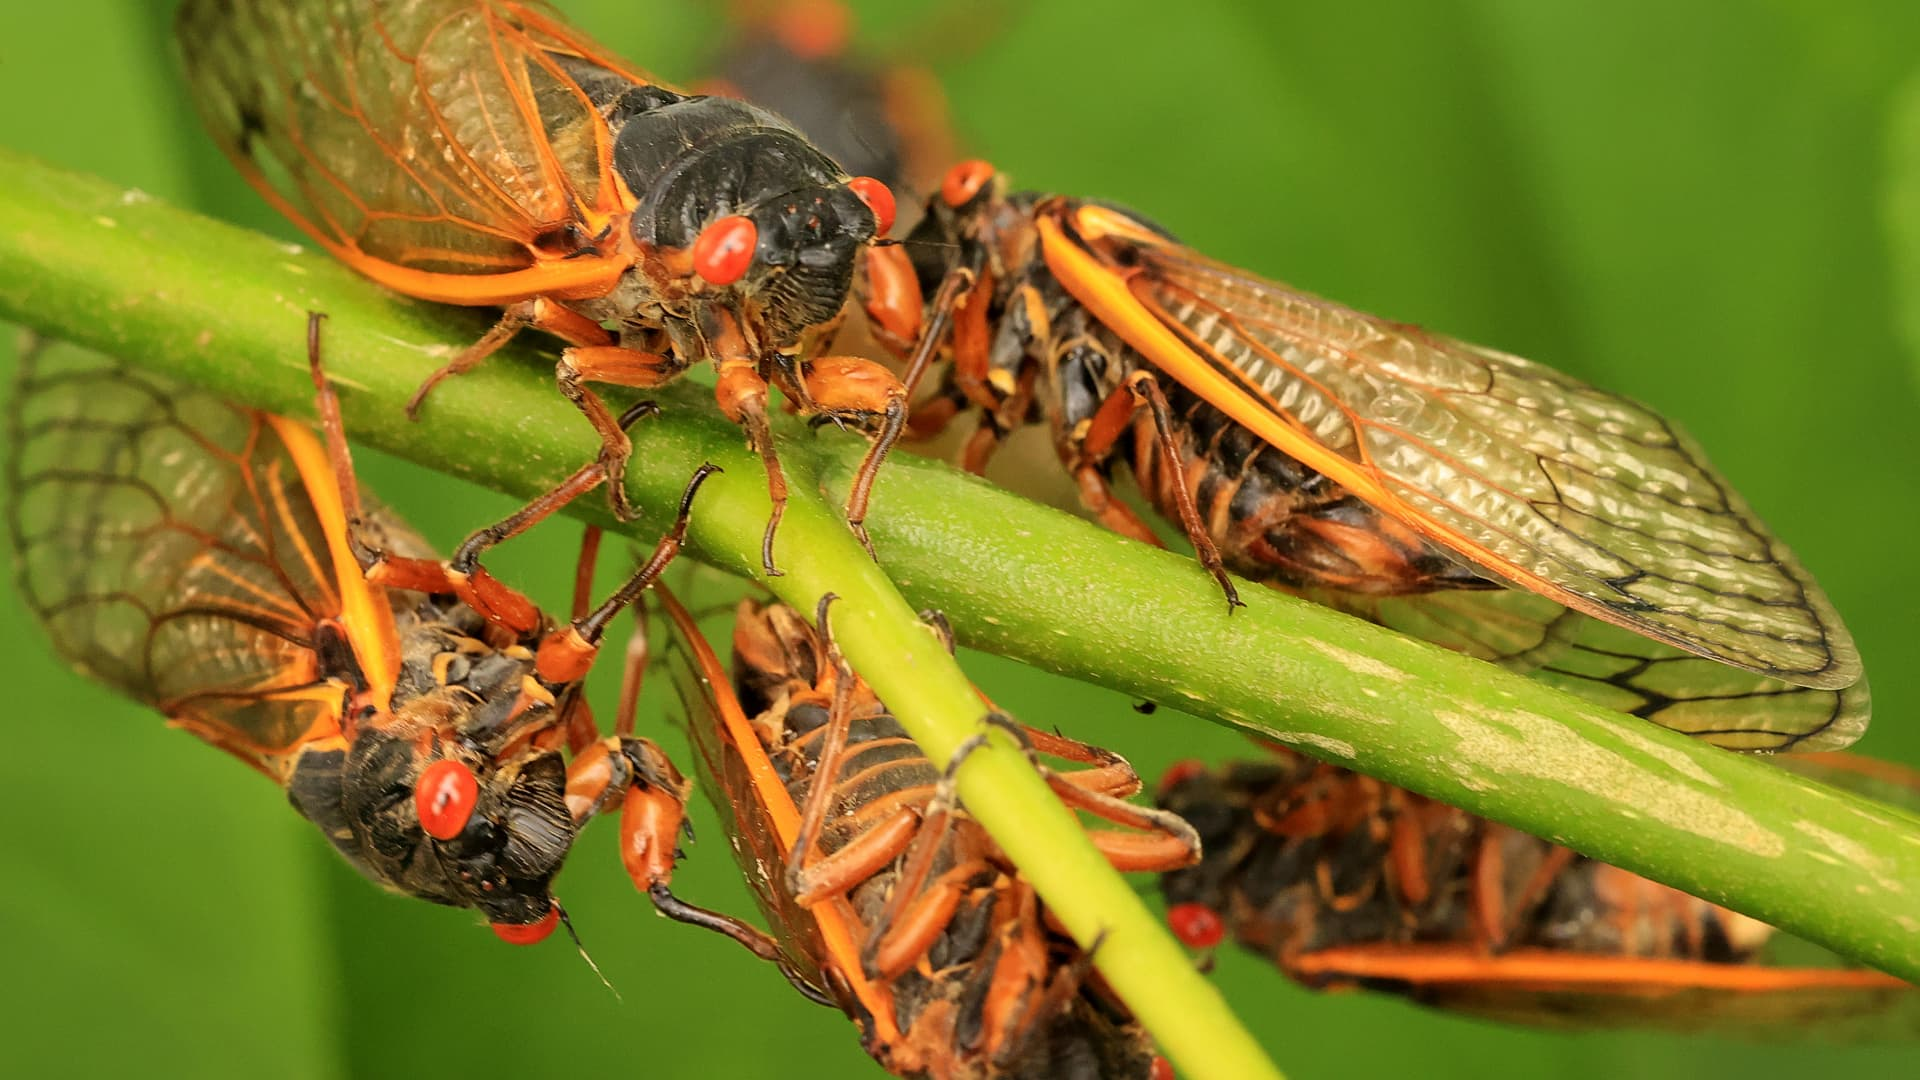 Magicicada periodical cicadas, members of Brood X, cluster on a plant at Fairland Recreational Park June 01, 2021 in Burtonsville, Maryland.